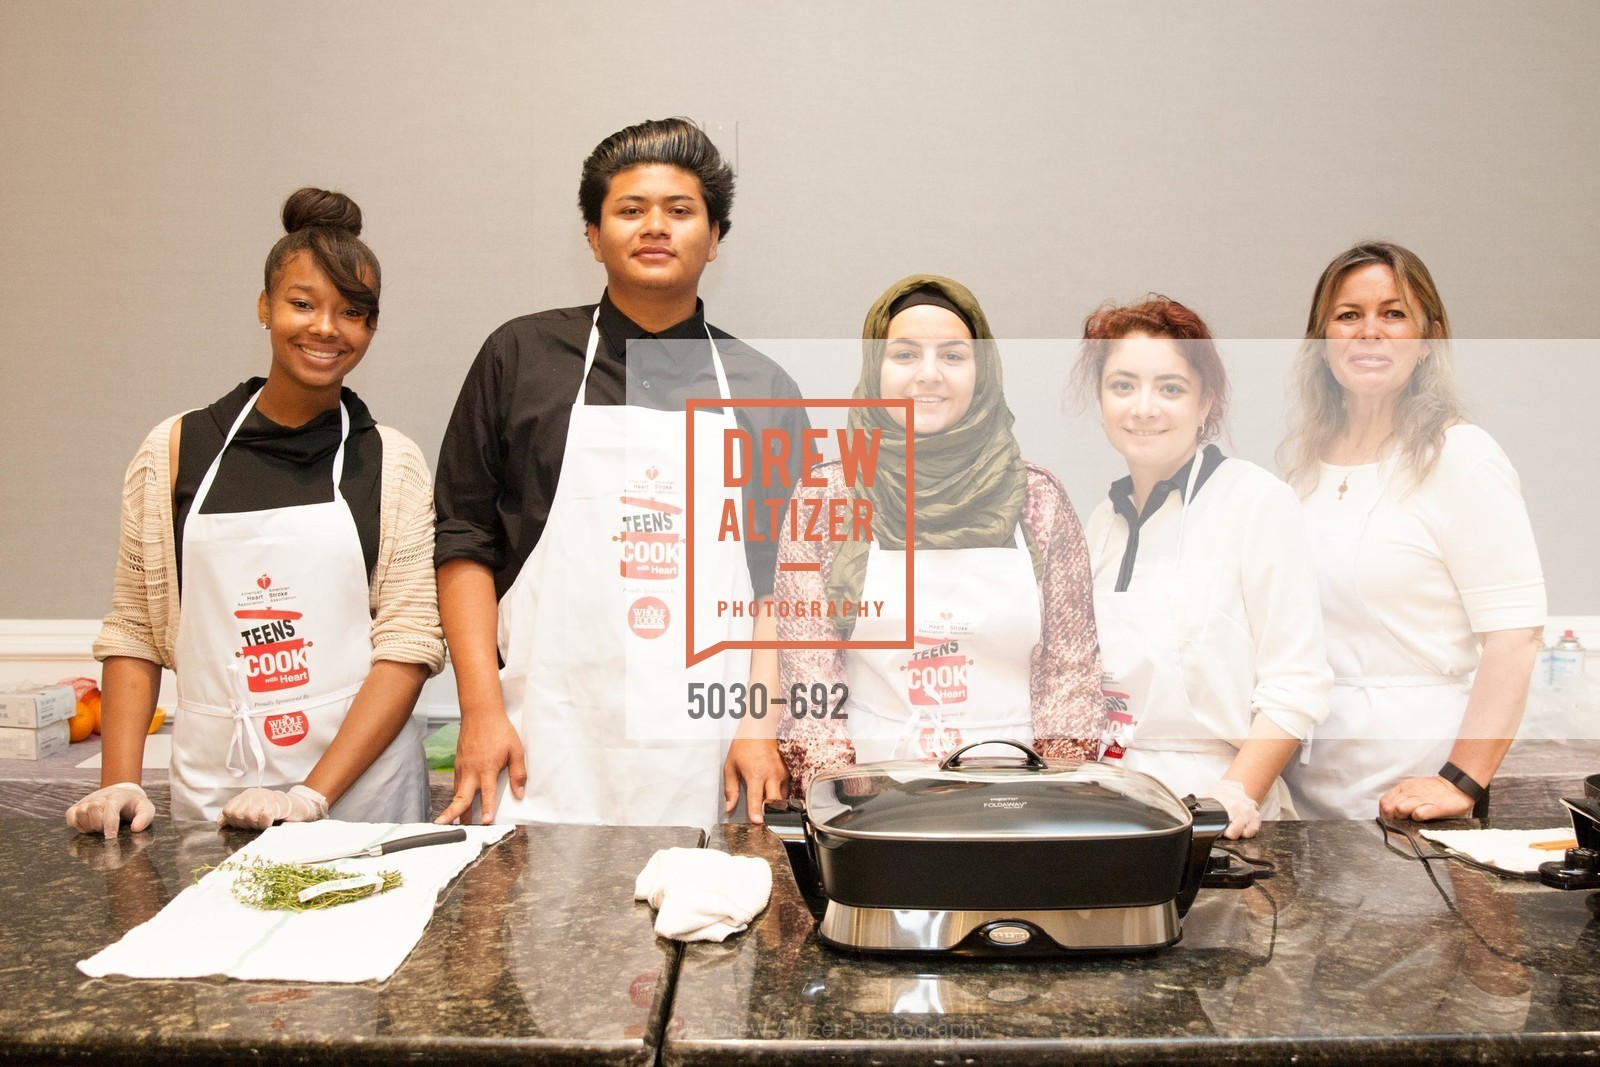 Shane Valentine, Paige Young, Aden Meza, Irem Urak, Olivia Shepardson, Rita Molloy, 2015 GoRed for Women Luncheon, US, May 2nd, 2015,Drew Altizer, Drew Altizer Photography, full-service agency, private events, San Francisco photographer, photographer california